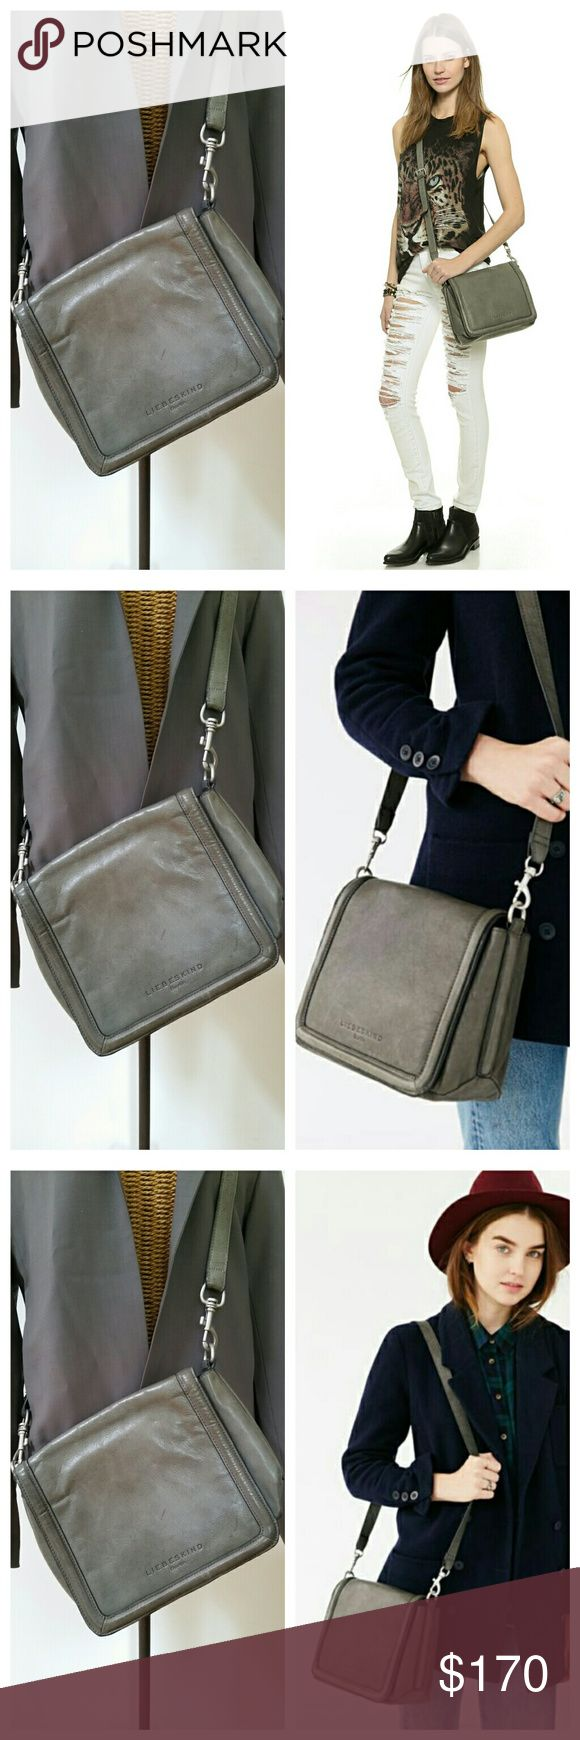 """LIEBESKIND grey leather crossbody messenger bag Gorgeous purse Dark grey 11"""" wide x 9.5"""" tall x 2"""" deep  A few scratches..overall very good condition  Clean interior with divider sections and zipper pocket Liebeskind Bags Crossbody Bags"""